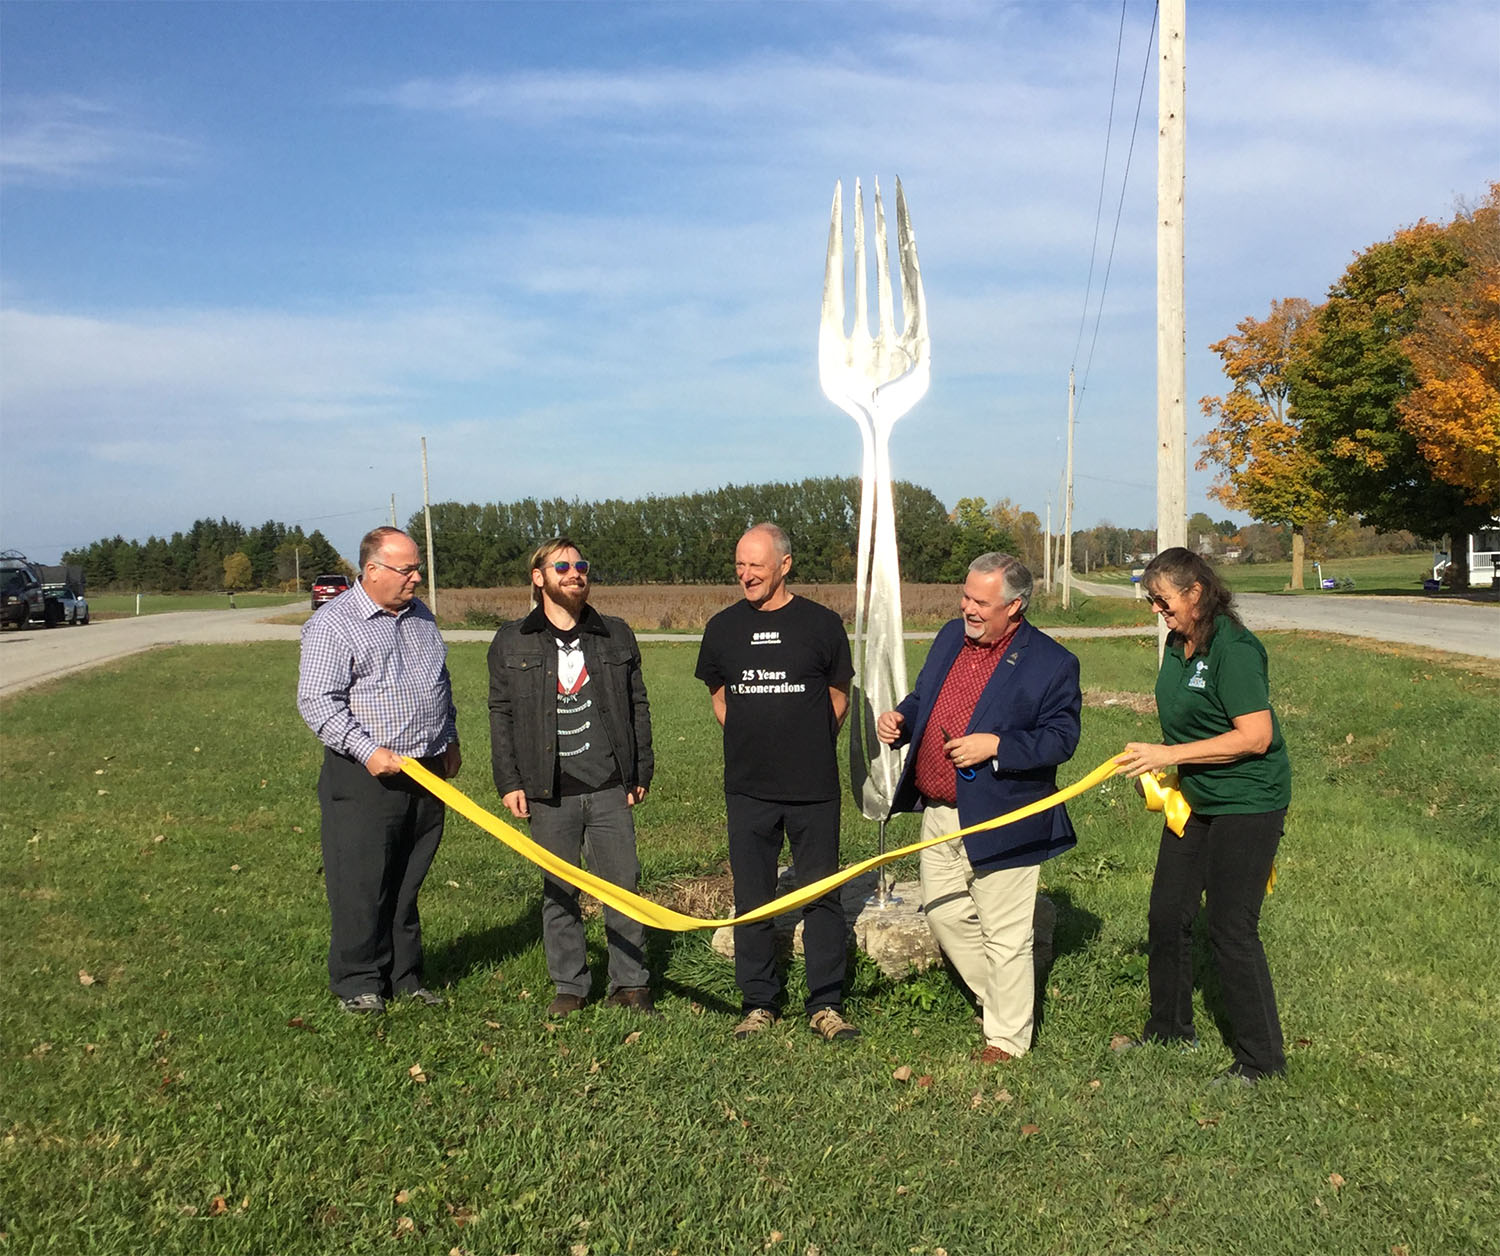 Tape cutting ceremony of the art installation 'Fork in the Road'.